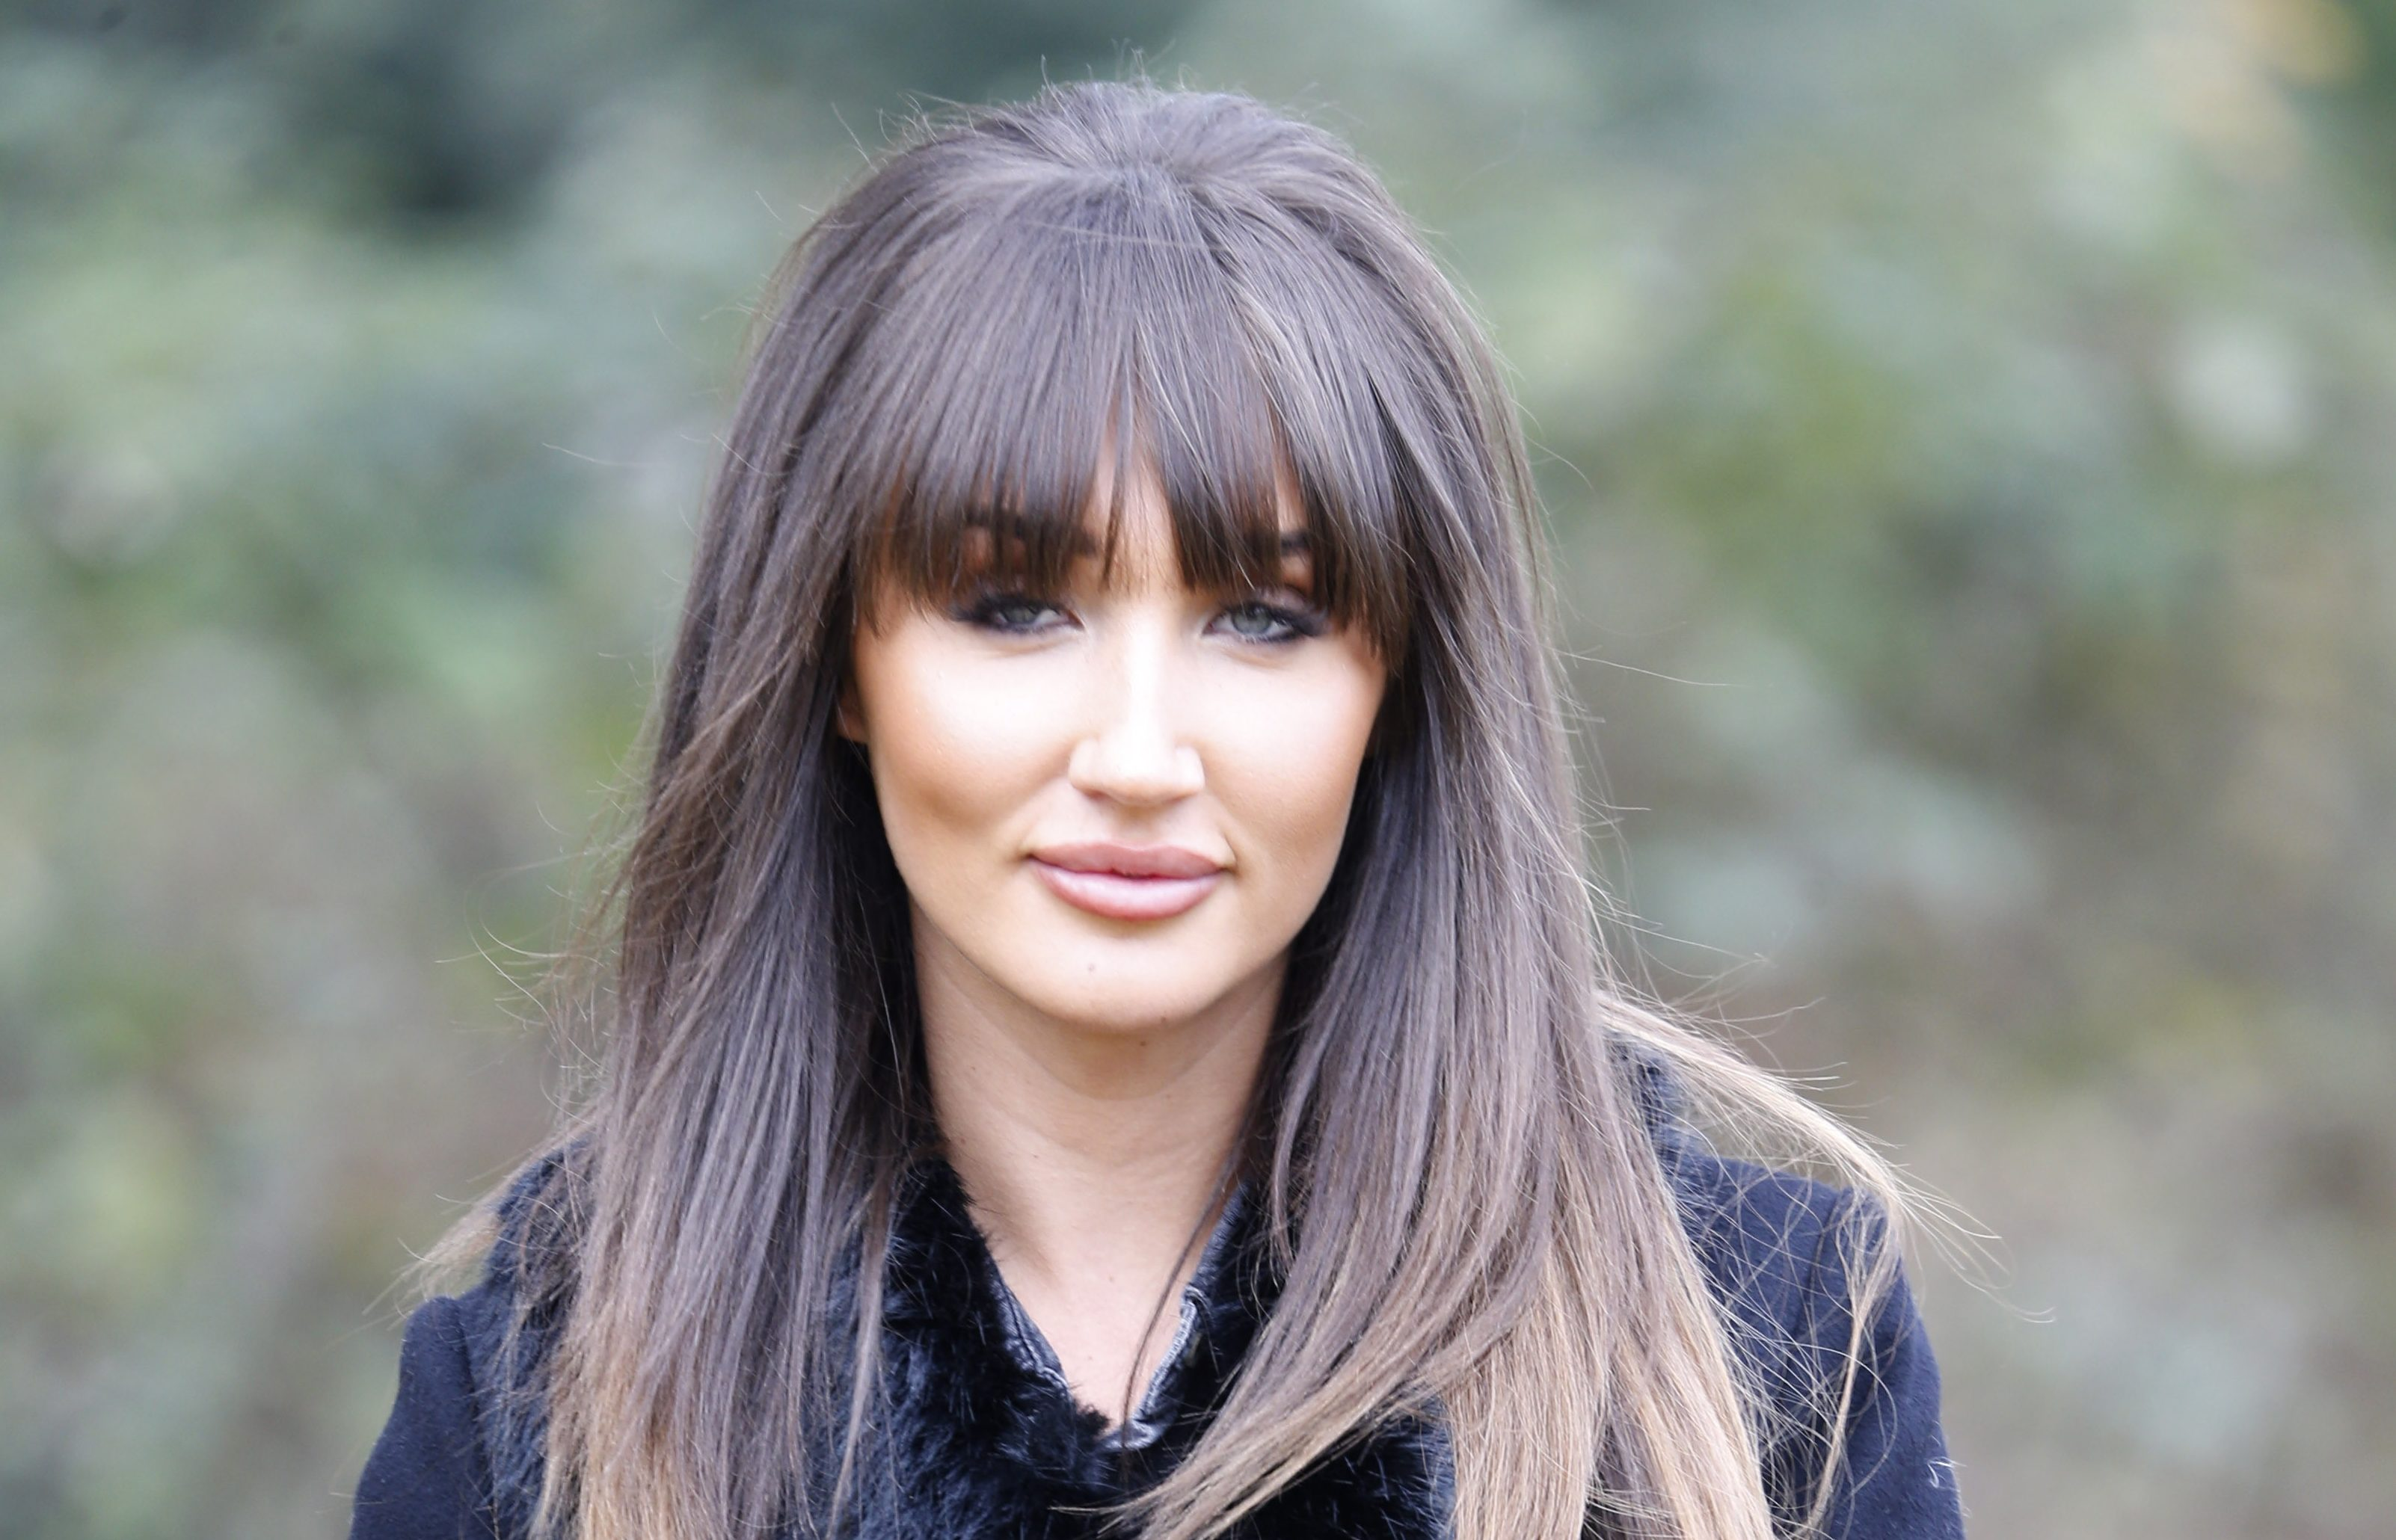 Megan McKenna looks unrecognisable as she unveils dramatic new look